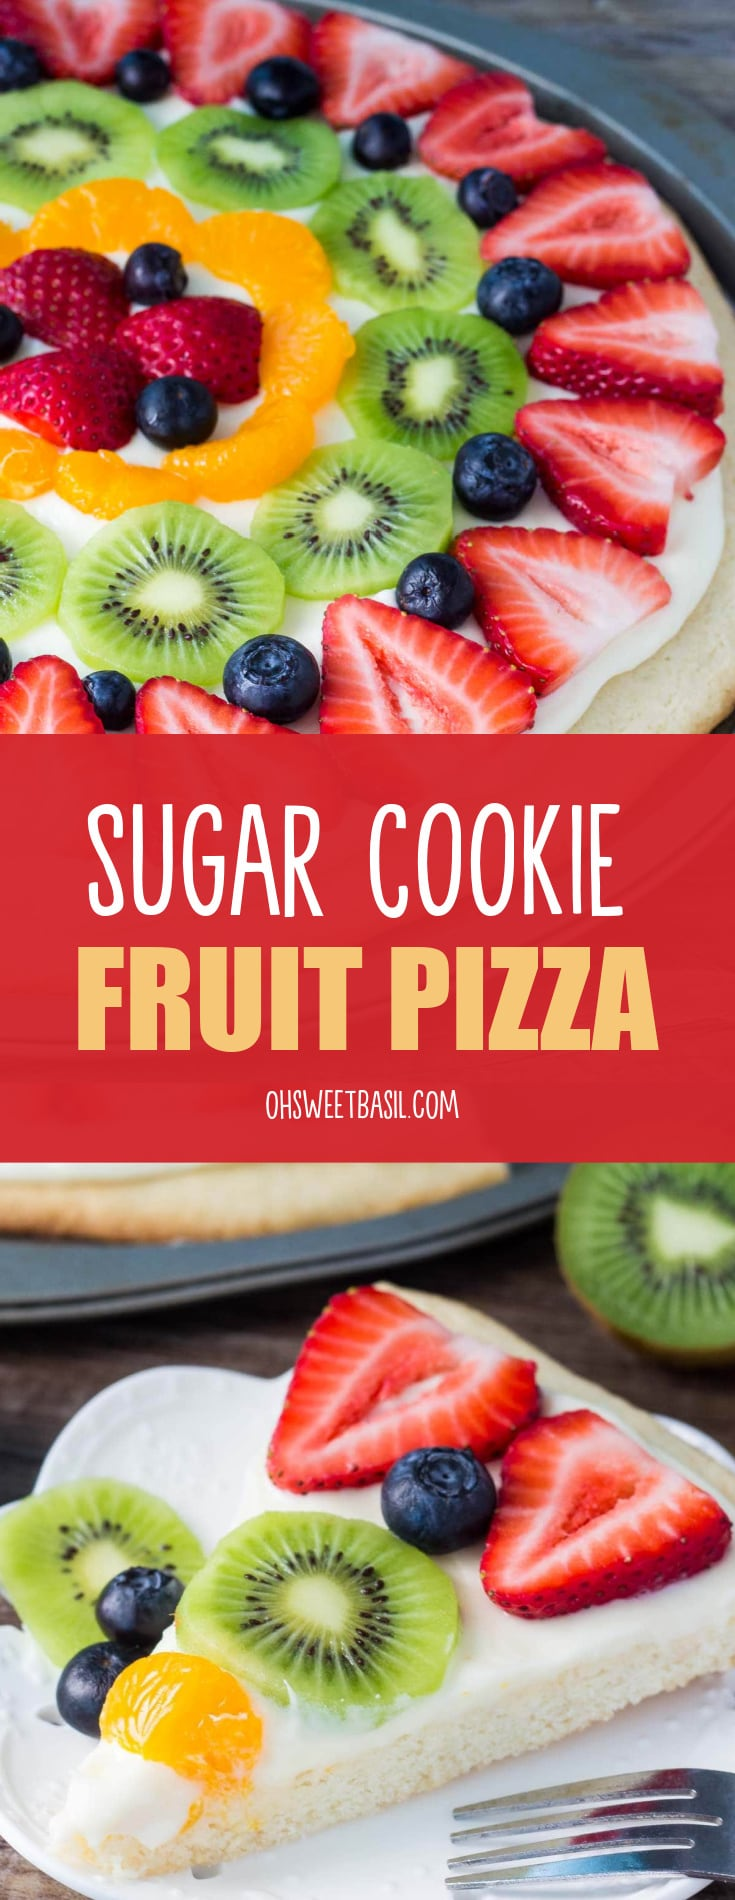 a sugar cookie pizza with fruit on top